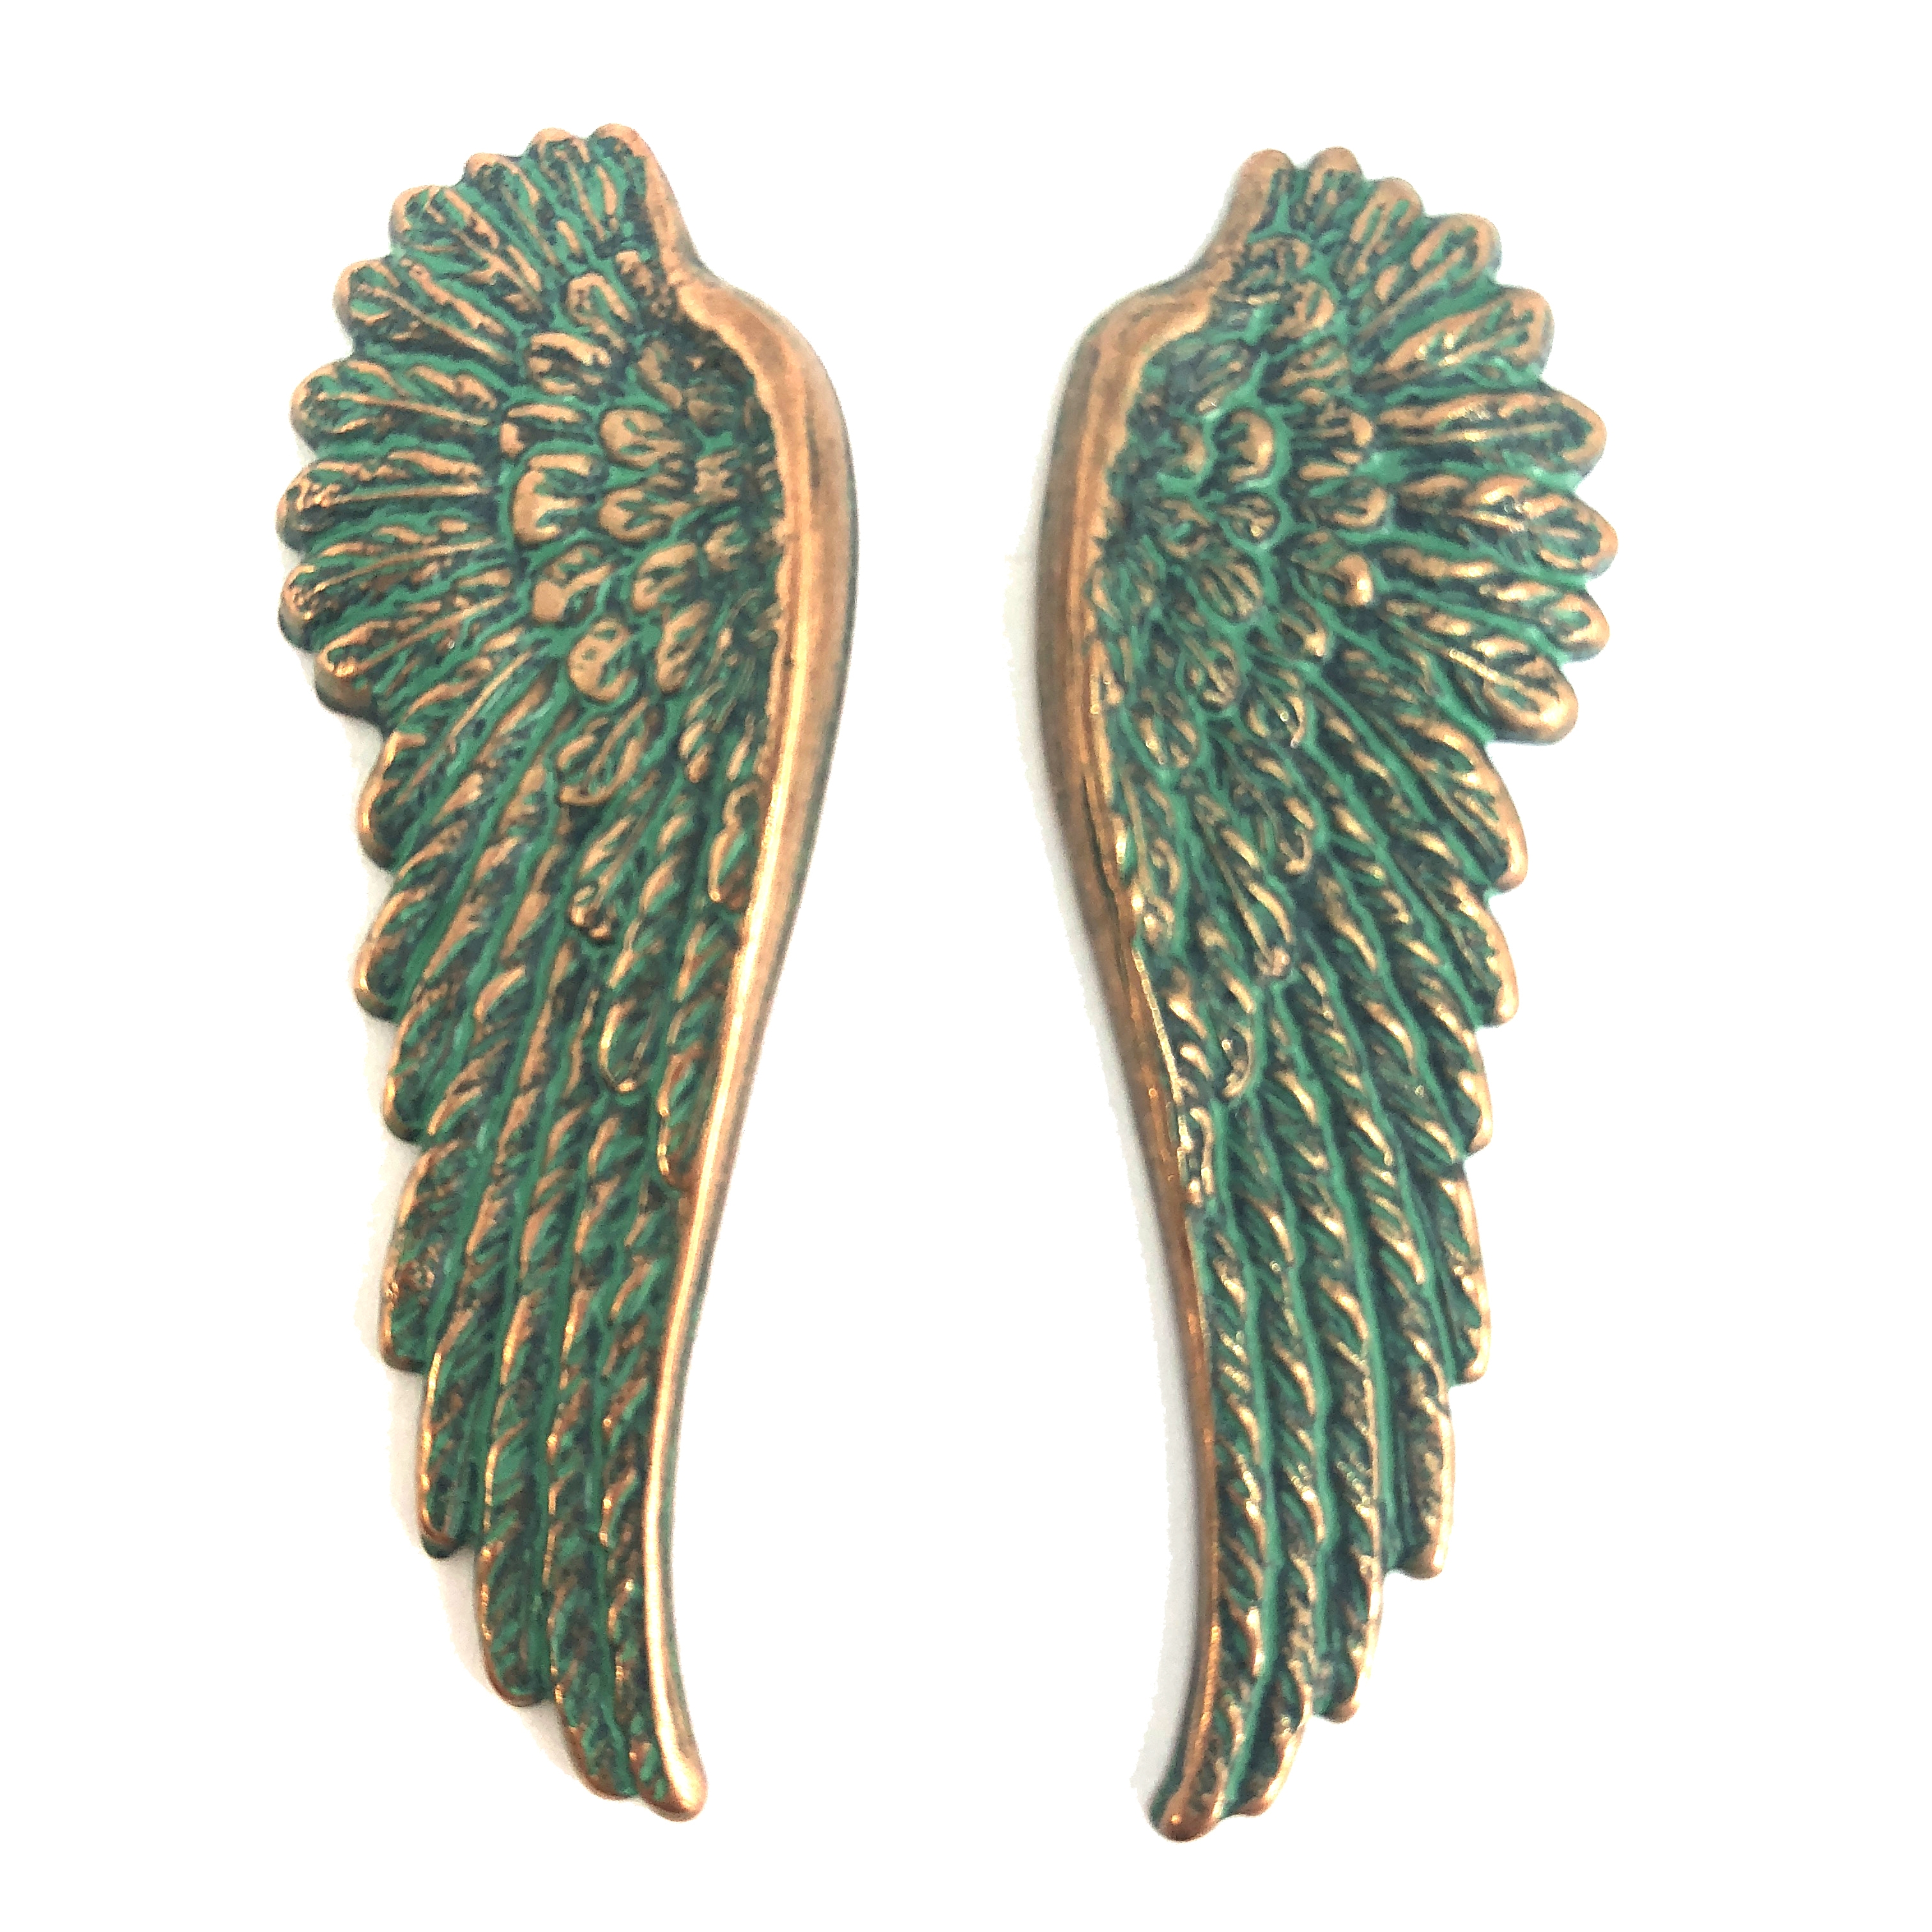 brass wings, bird wings, aqua copper patina, 08217, aqua, copper, wings, vintage jewelry supplies, brass jewelry parts, jewelry making supplies, US made, nickel free, Bsue Boutiques